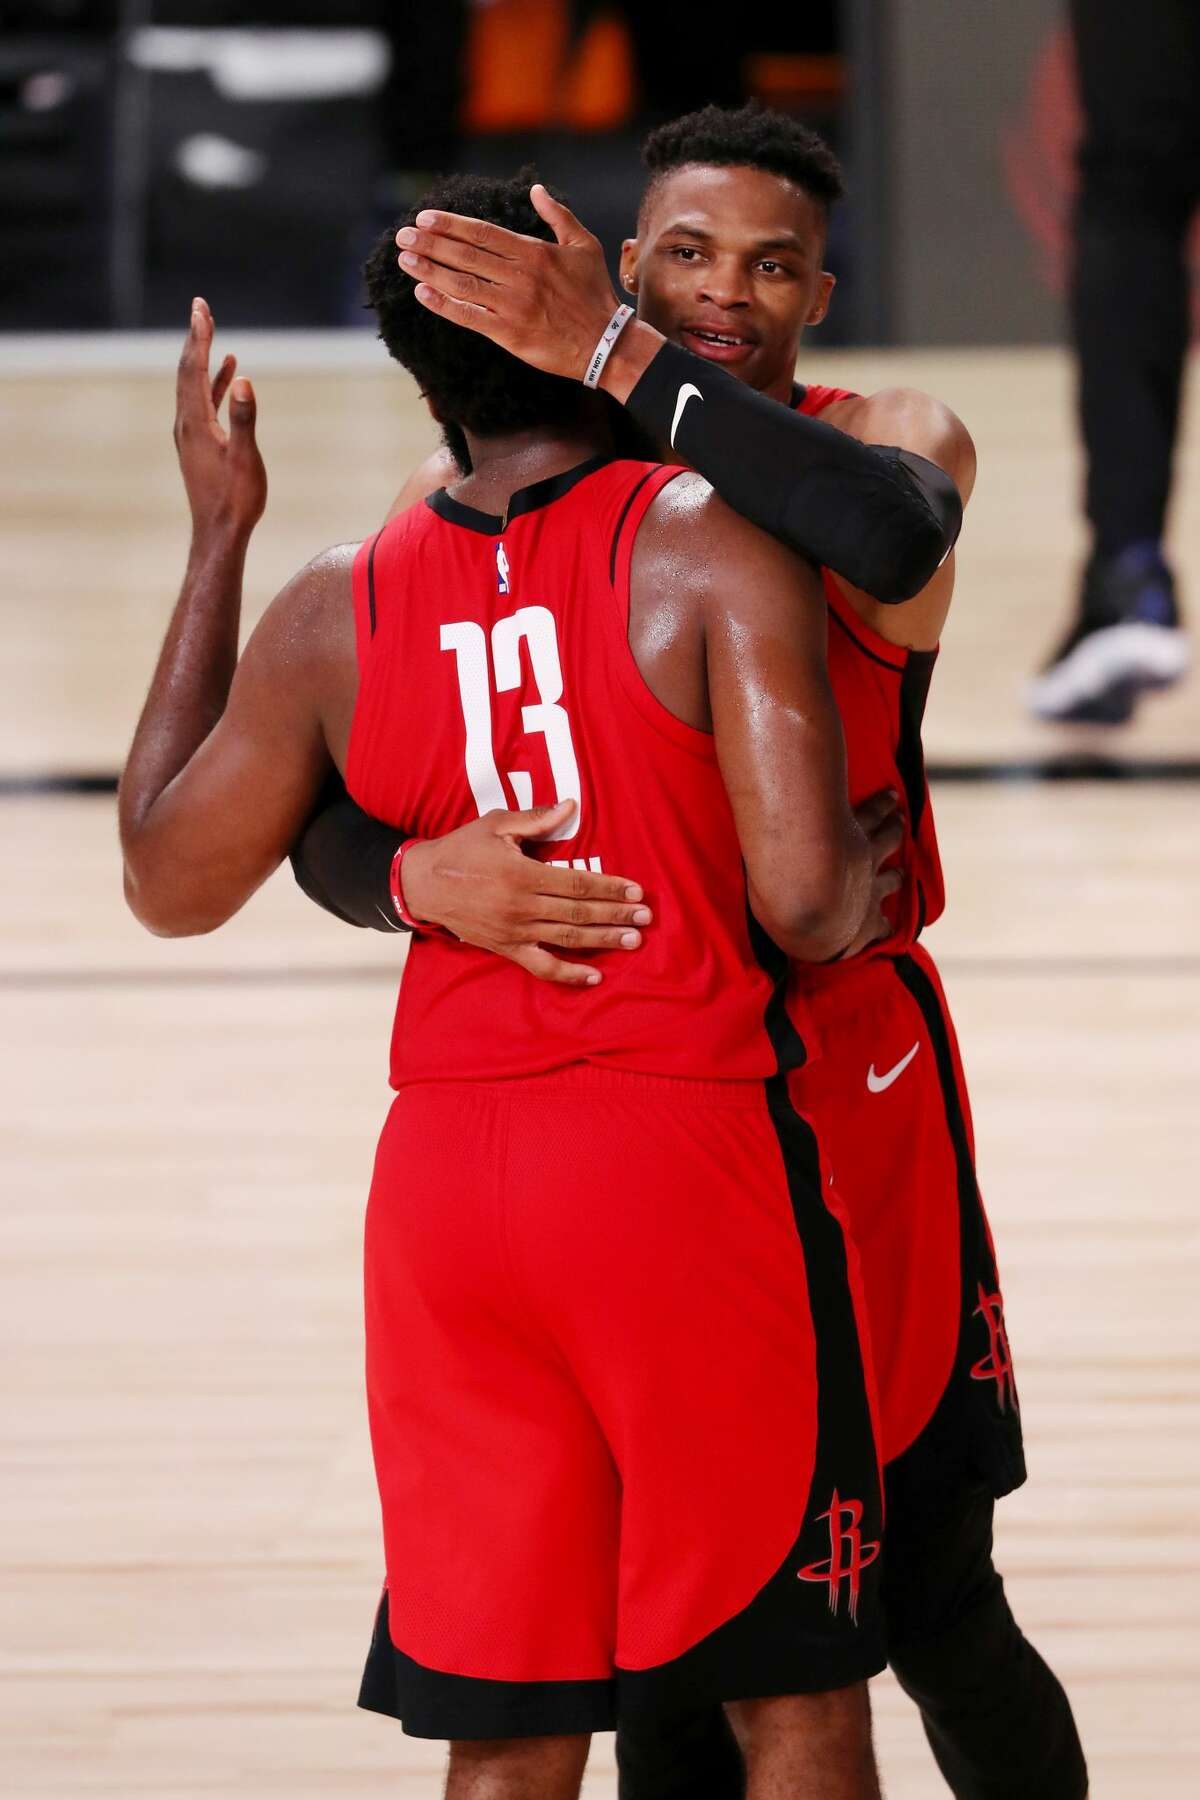 LAKE BUENA VISTA, FLORIDA - JULY 31: Russell Westbrook #0 of the Houston Rockets celebrates with James Harden #13 after defeating the Dallas Mavericks 153-149 during overtime at The Arena at ESPN Wide World Of Sports Complex on July 31, 2020 in Lake Buena Vista, Florida. NOTE TO USER: User expressly acknowledges and agrees that, by downloading and or using this photograph, User is consenting to the terms and conditions of the Getty Images License Agreement. (Photo by Mike Ehrmann/Getty Images)